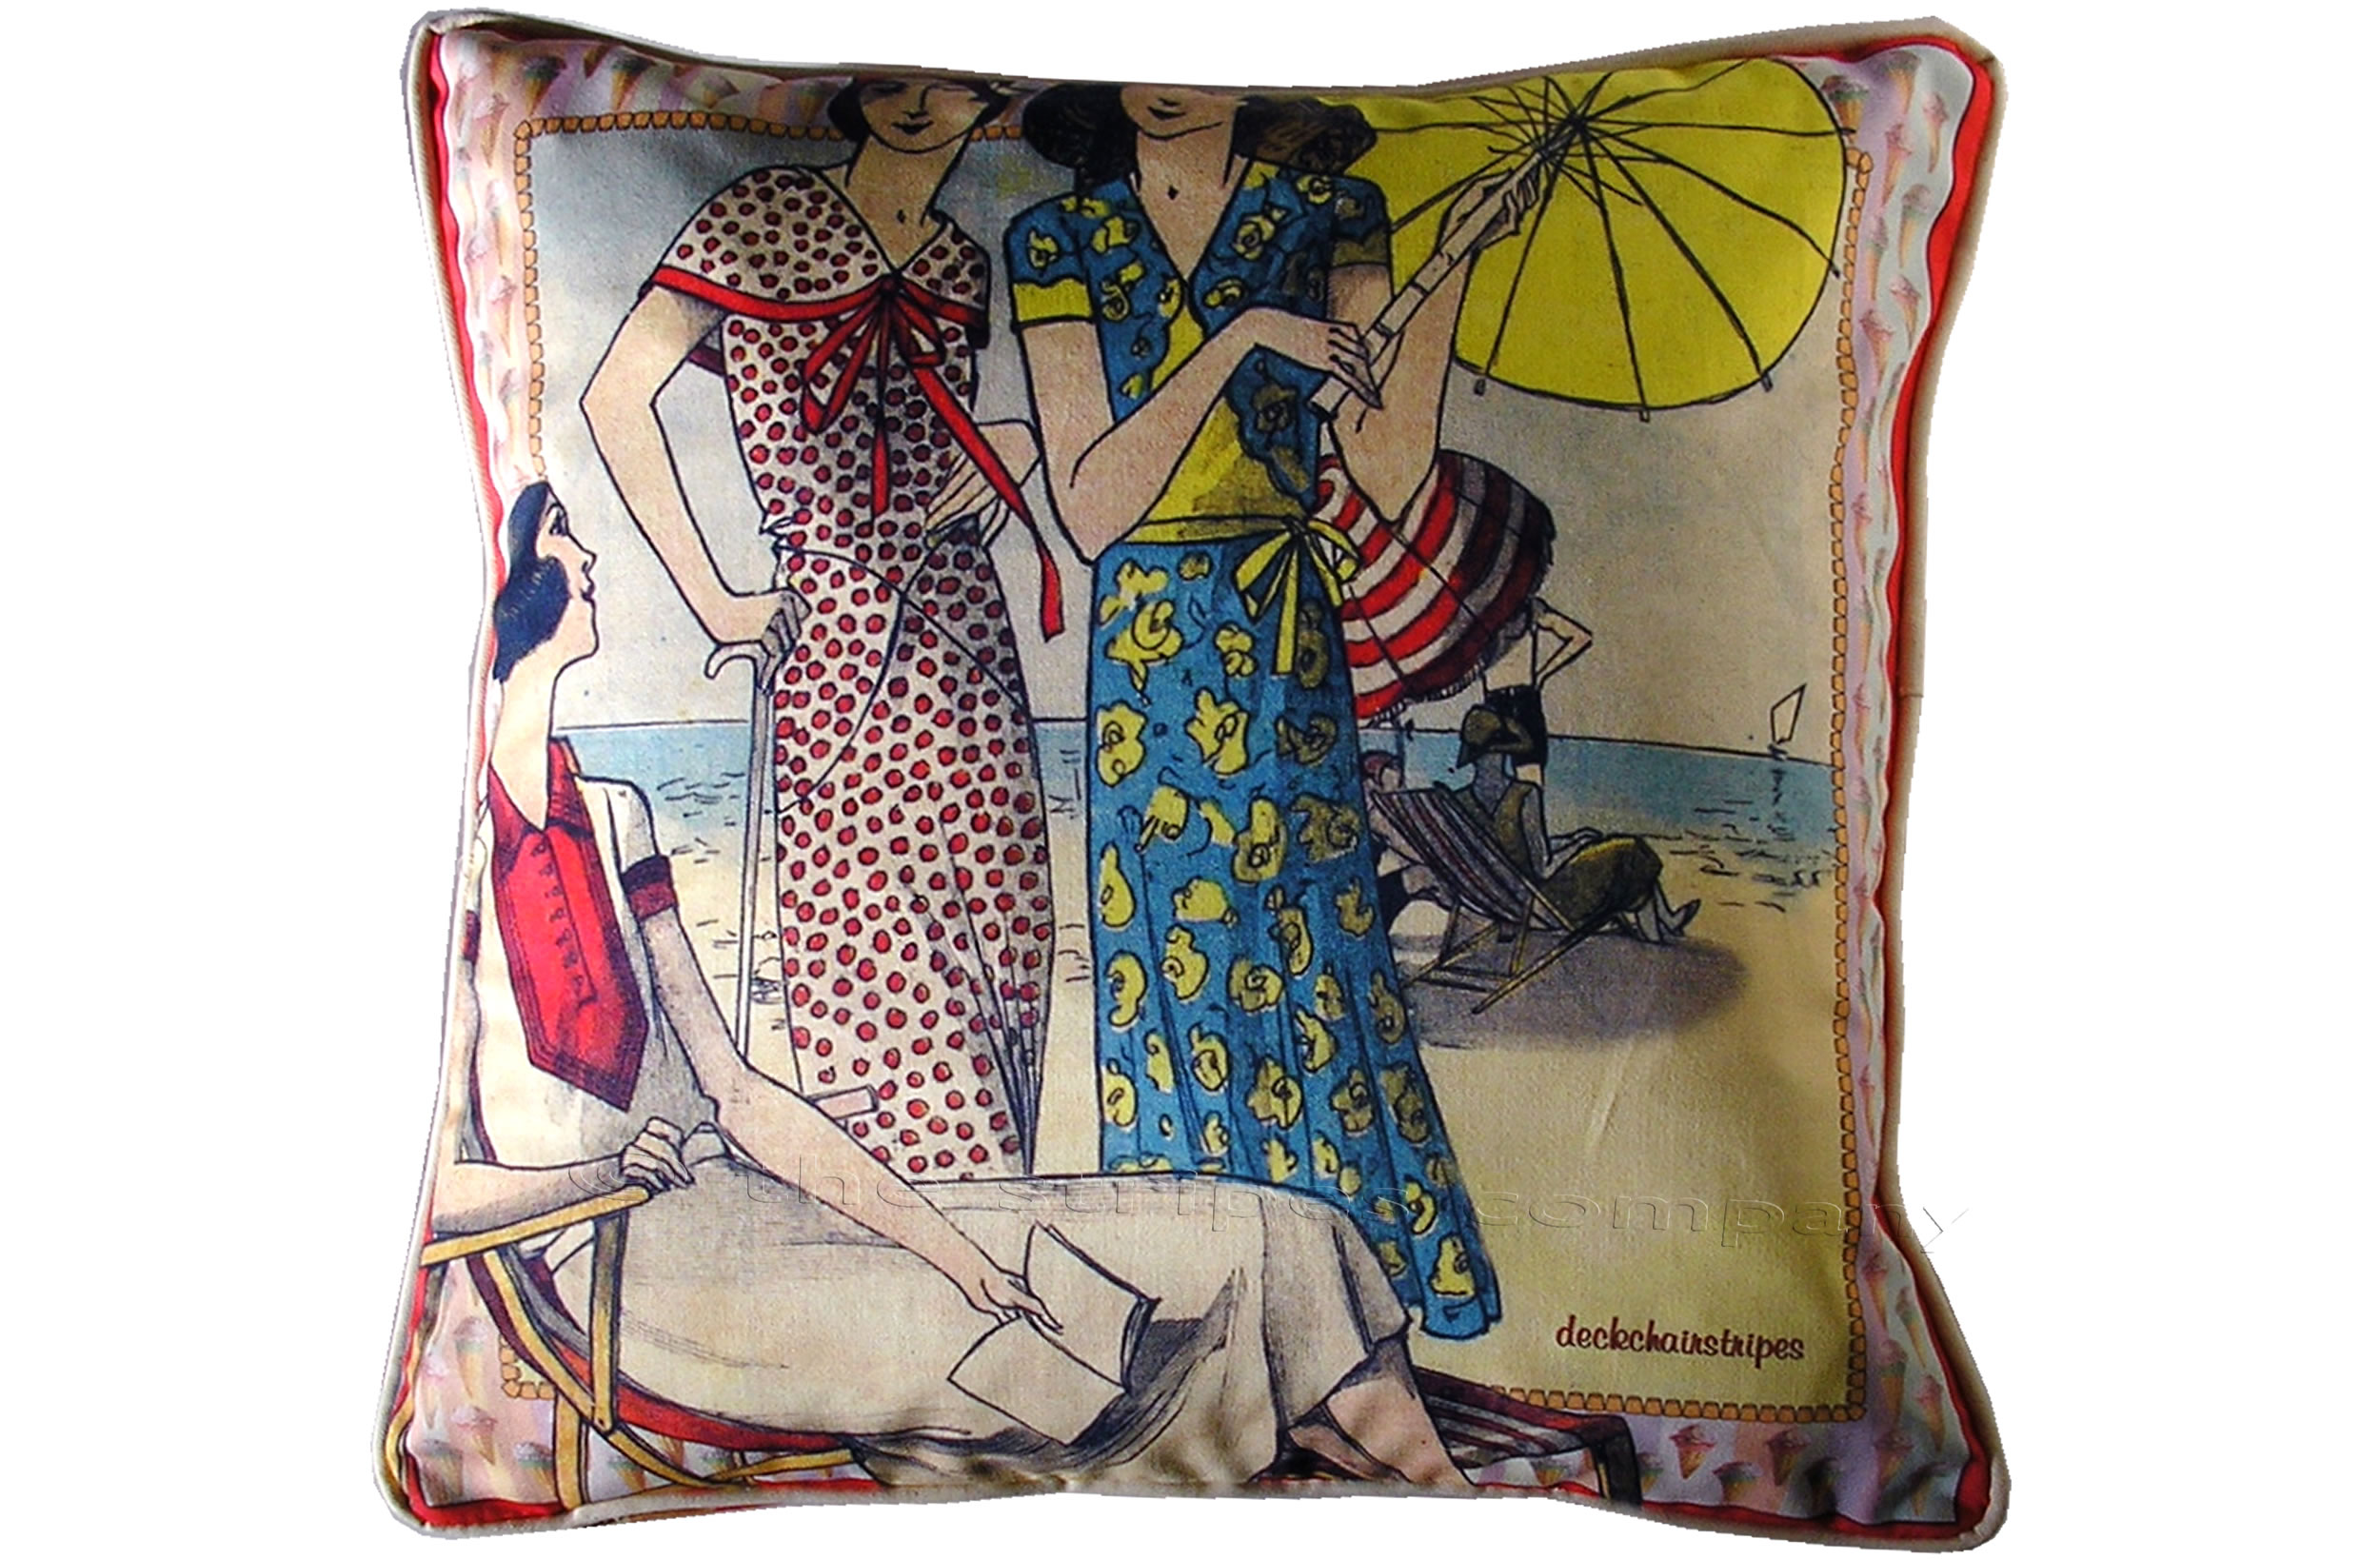 Retro Ladies on the Beach Cushions - Vintage Scarf Cushions